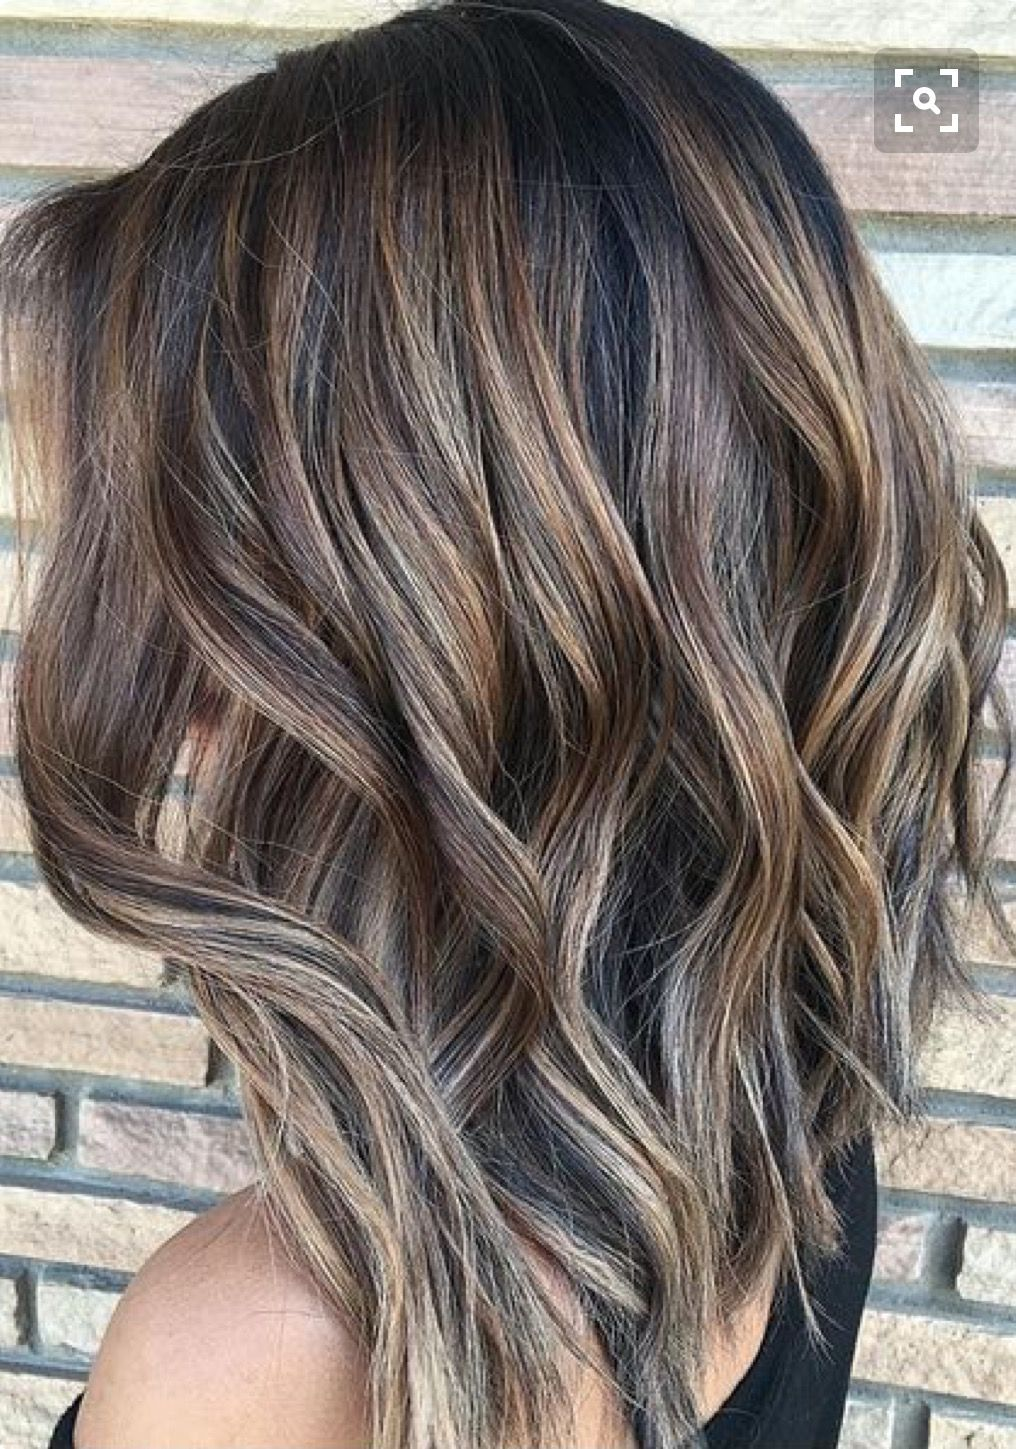 Pin By Jolynn Pitts On Hair Color Pinterest Hair Hair Styles